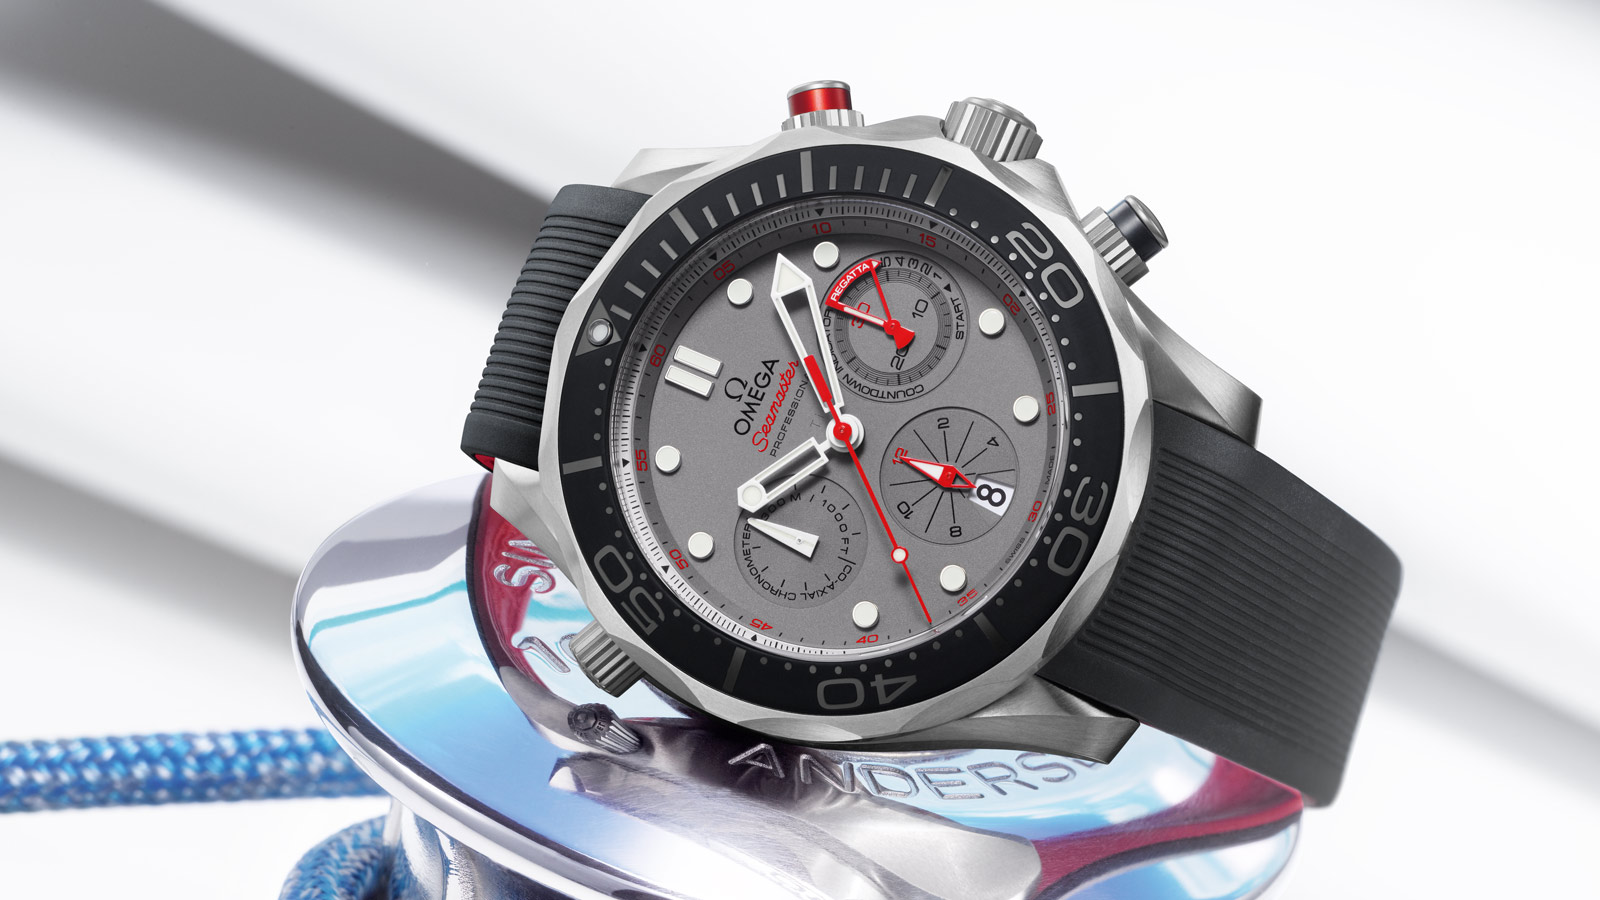 Seamaster ダイバー 300M Diver 300M Co‑Axial Chronograph 44 mm - 212.92.44.50.99.001 - ビュー 1